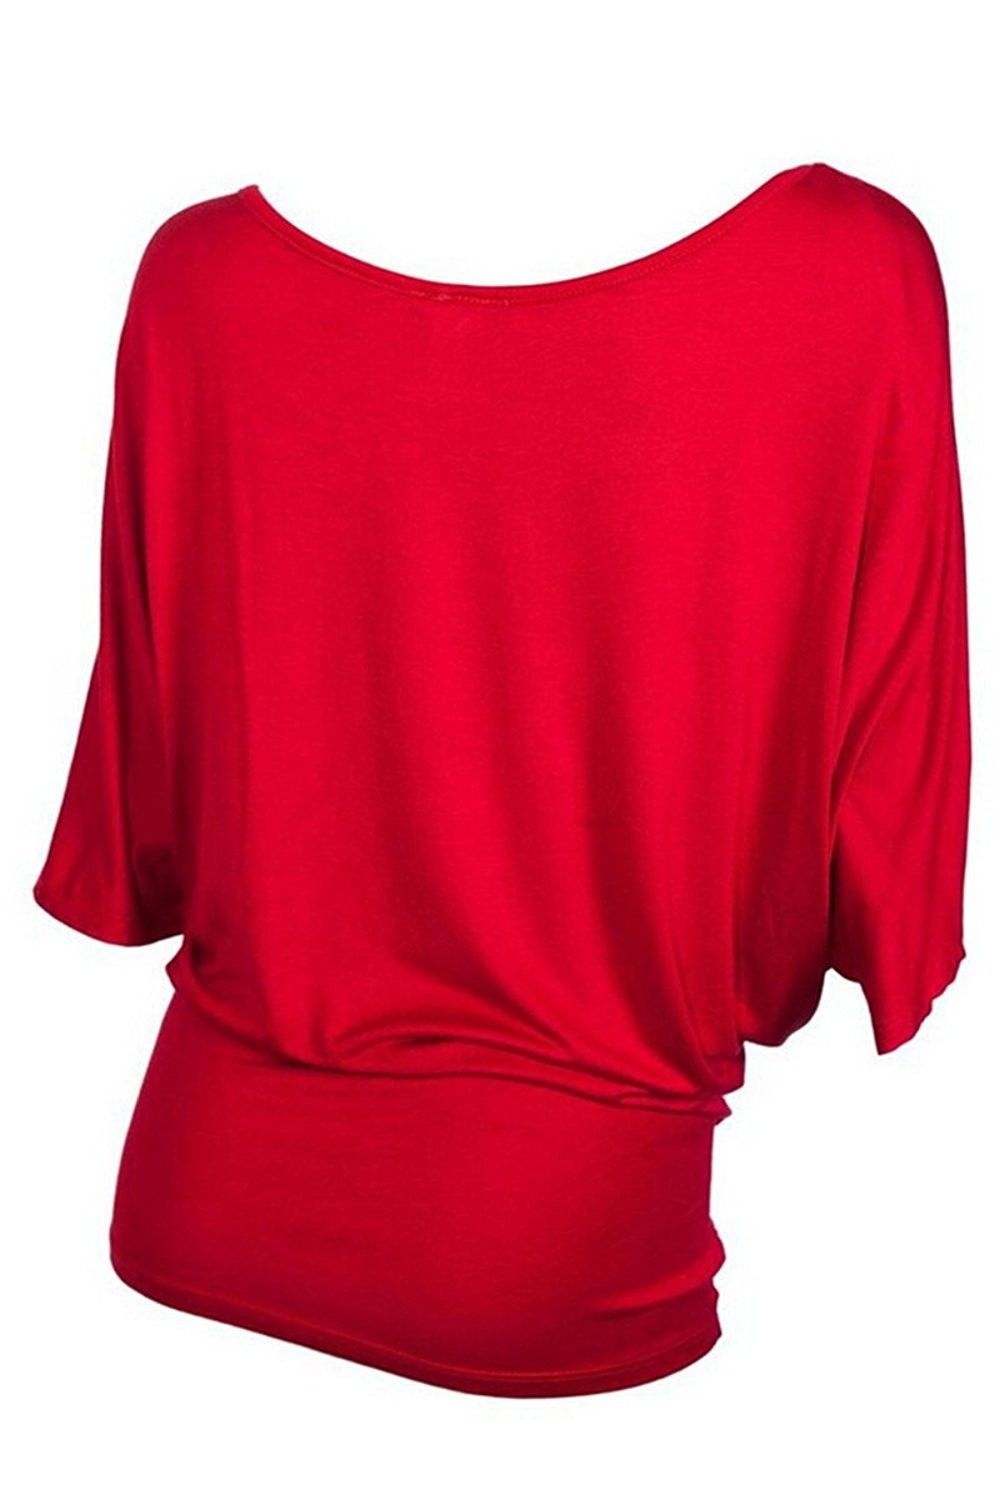 f4d6cd54 Women's Clothing, Tops & Tees, Blouses & Button-Down Shirts,Womens Off One  Shoulder Skull Bardot Batwing Sleeve T Shirt Top - Red - CK17YG24N9S  #Clothing ...